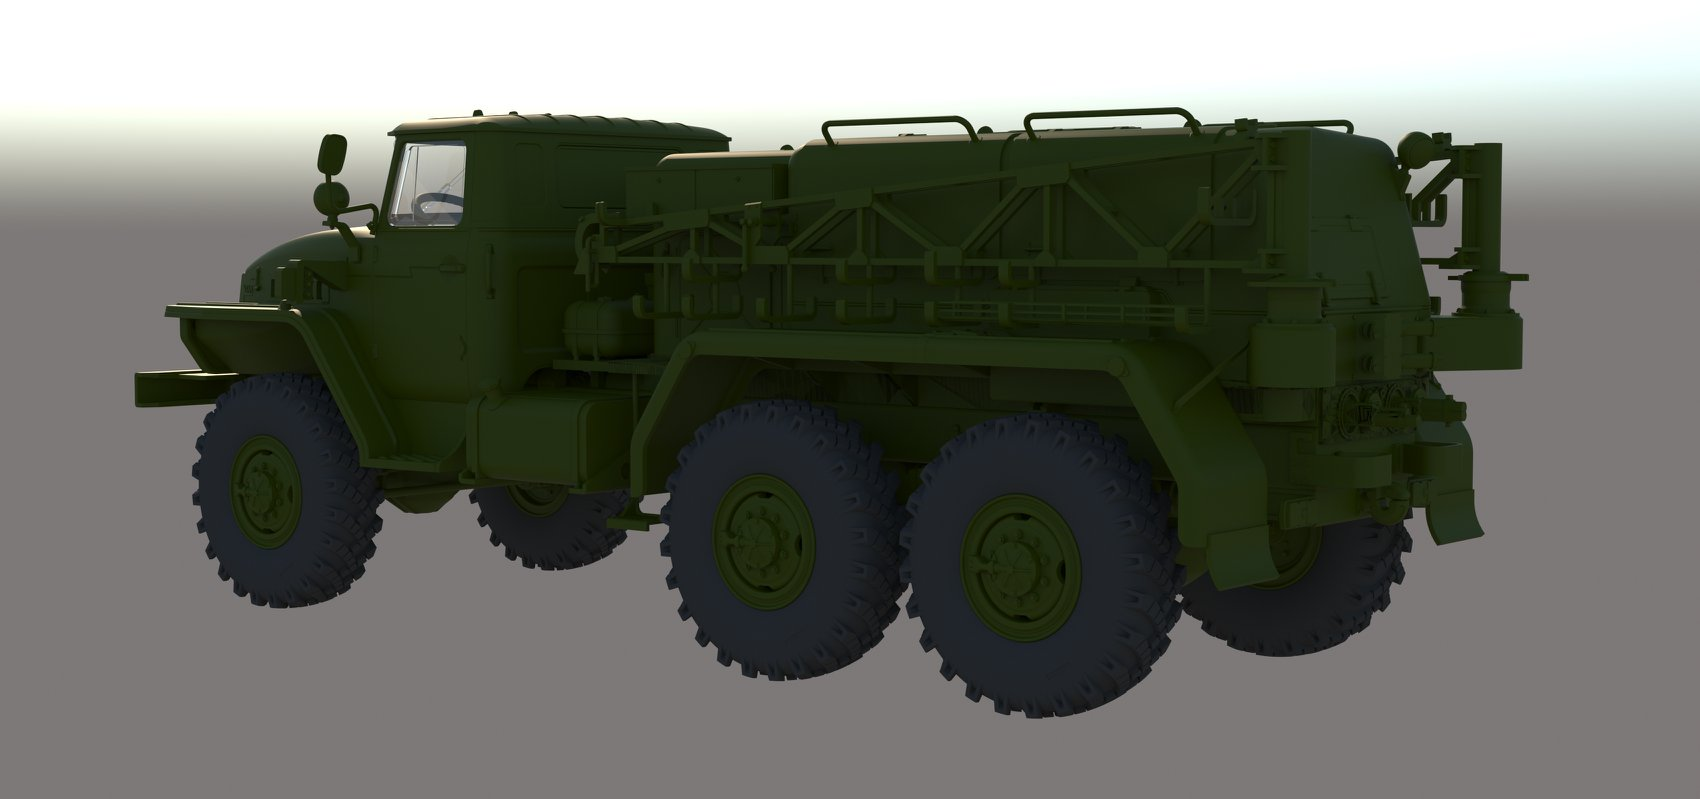 KH80158 1/48 Russian Bomb Loading cart with Ural 4320